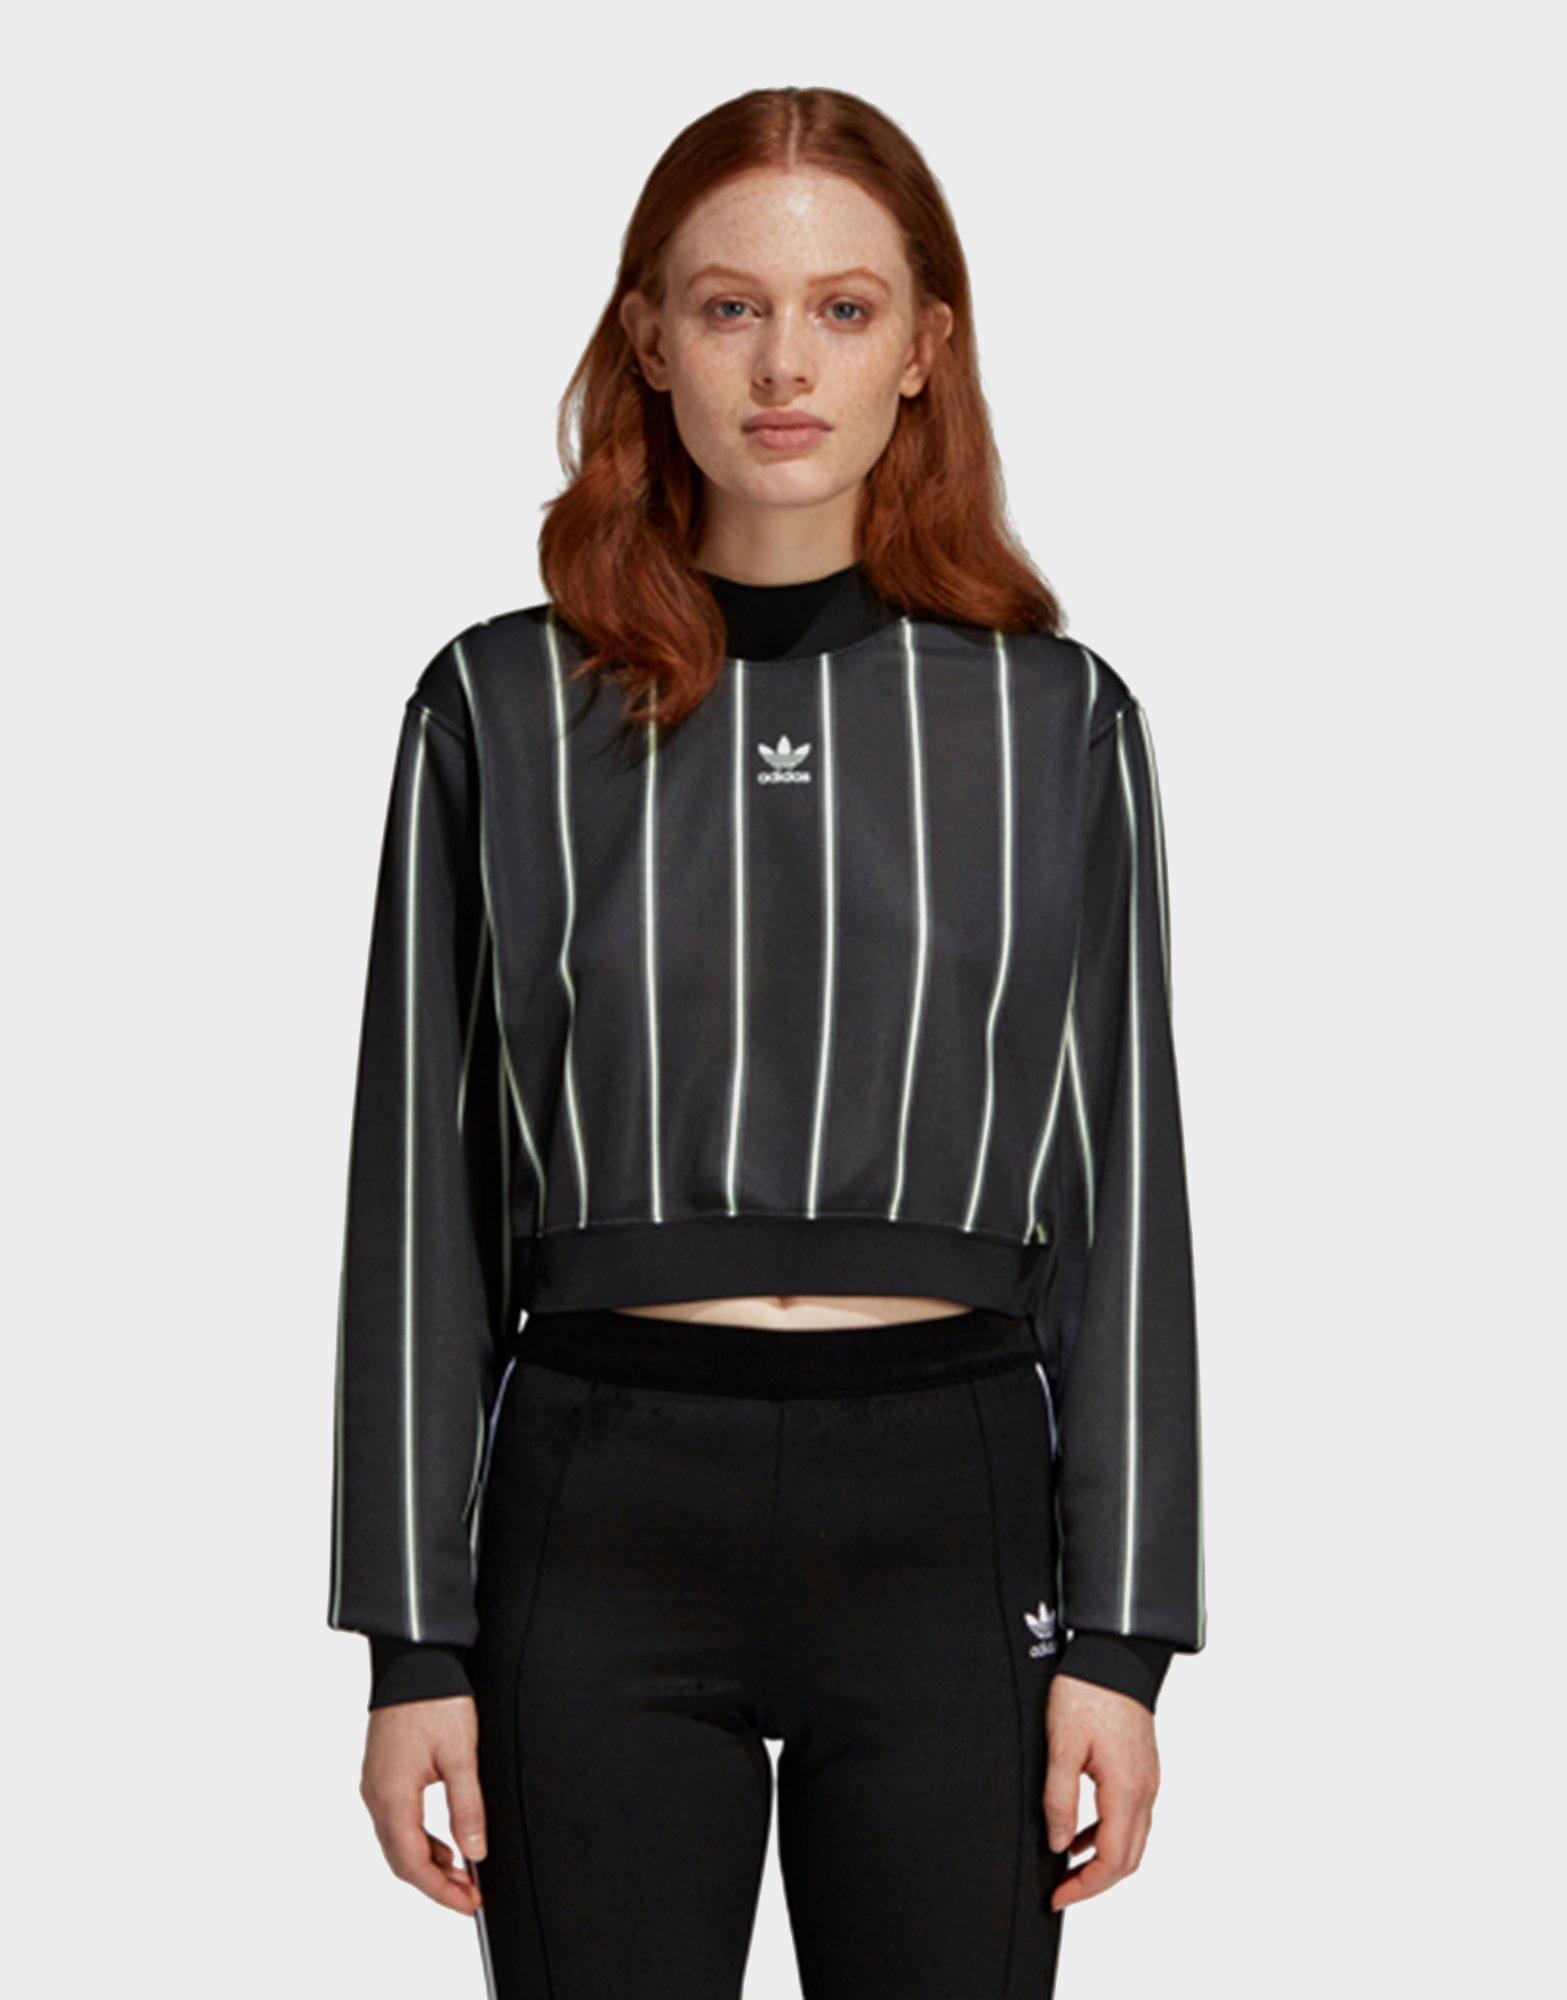 309da0dd Adidas Football Sweatshirt in Black - Lyst